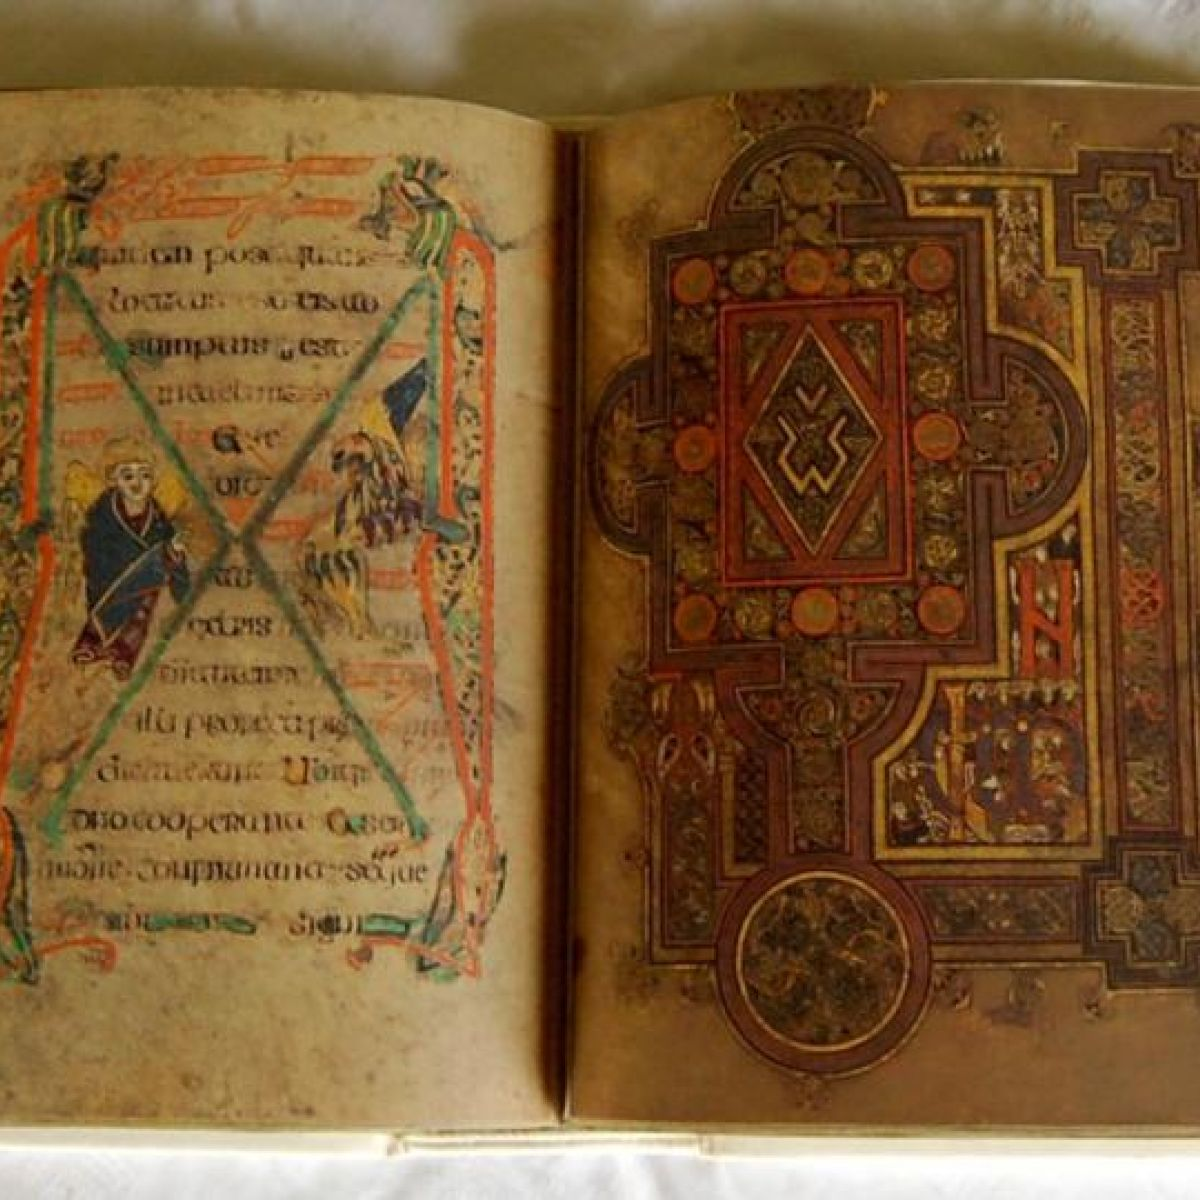 The Book of Kells - The Library of Trinity College Dublin